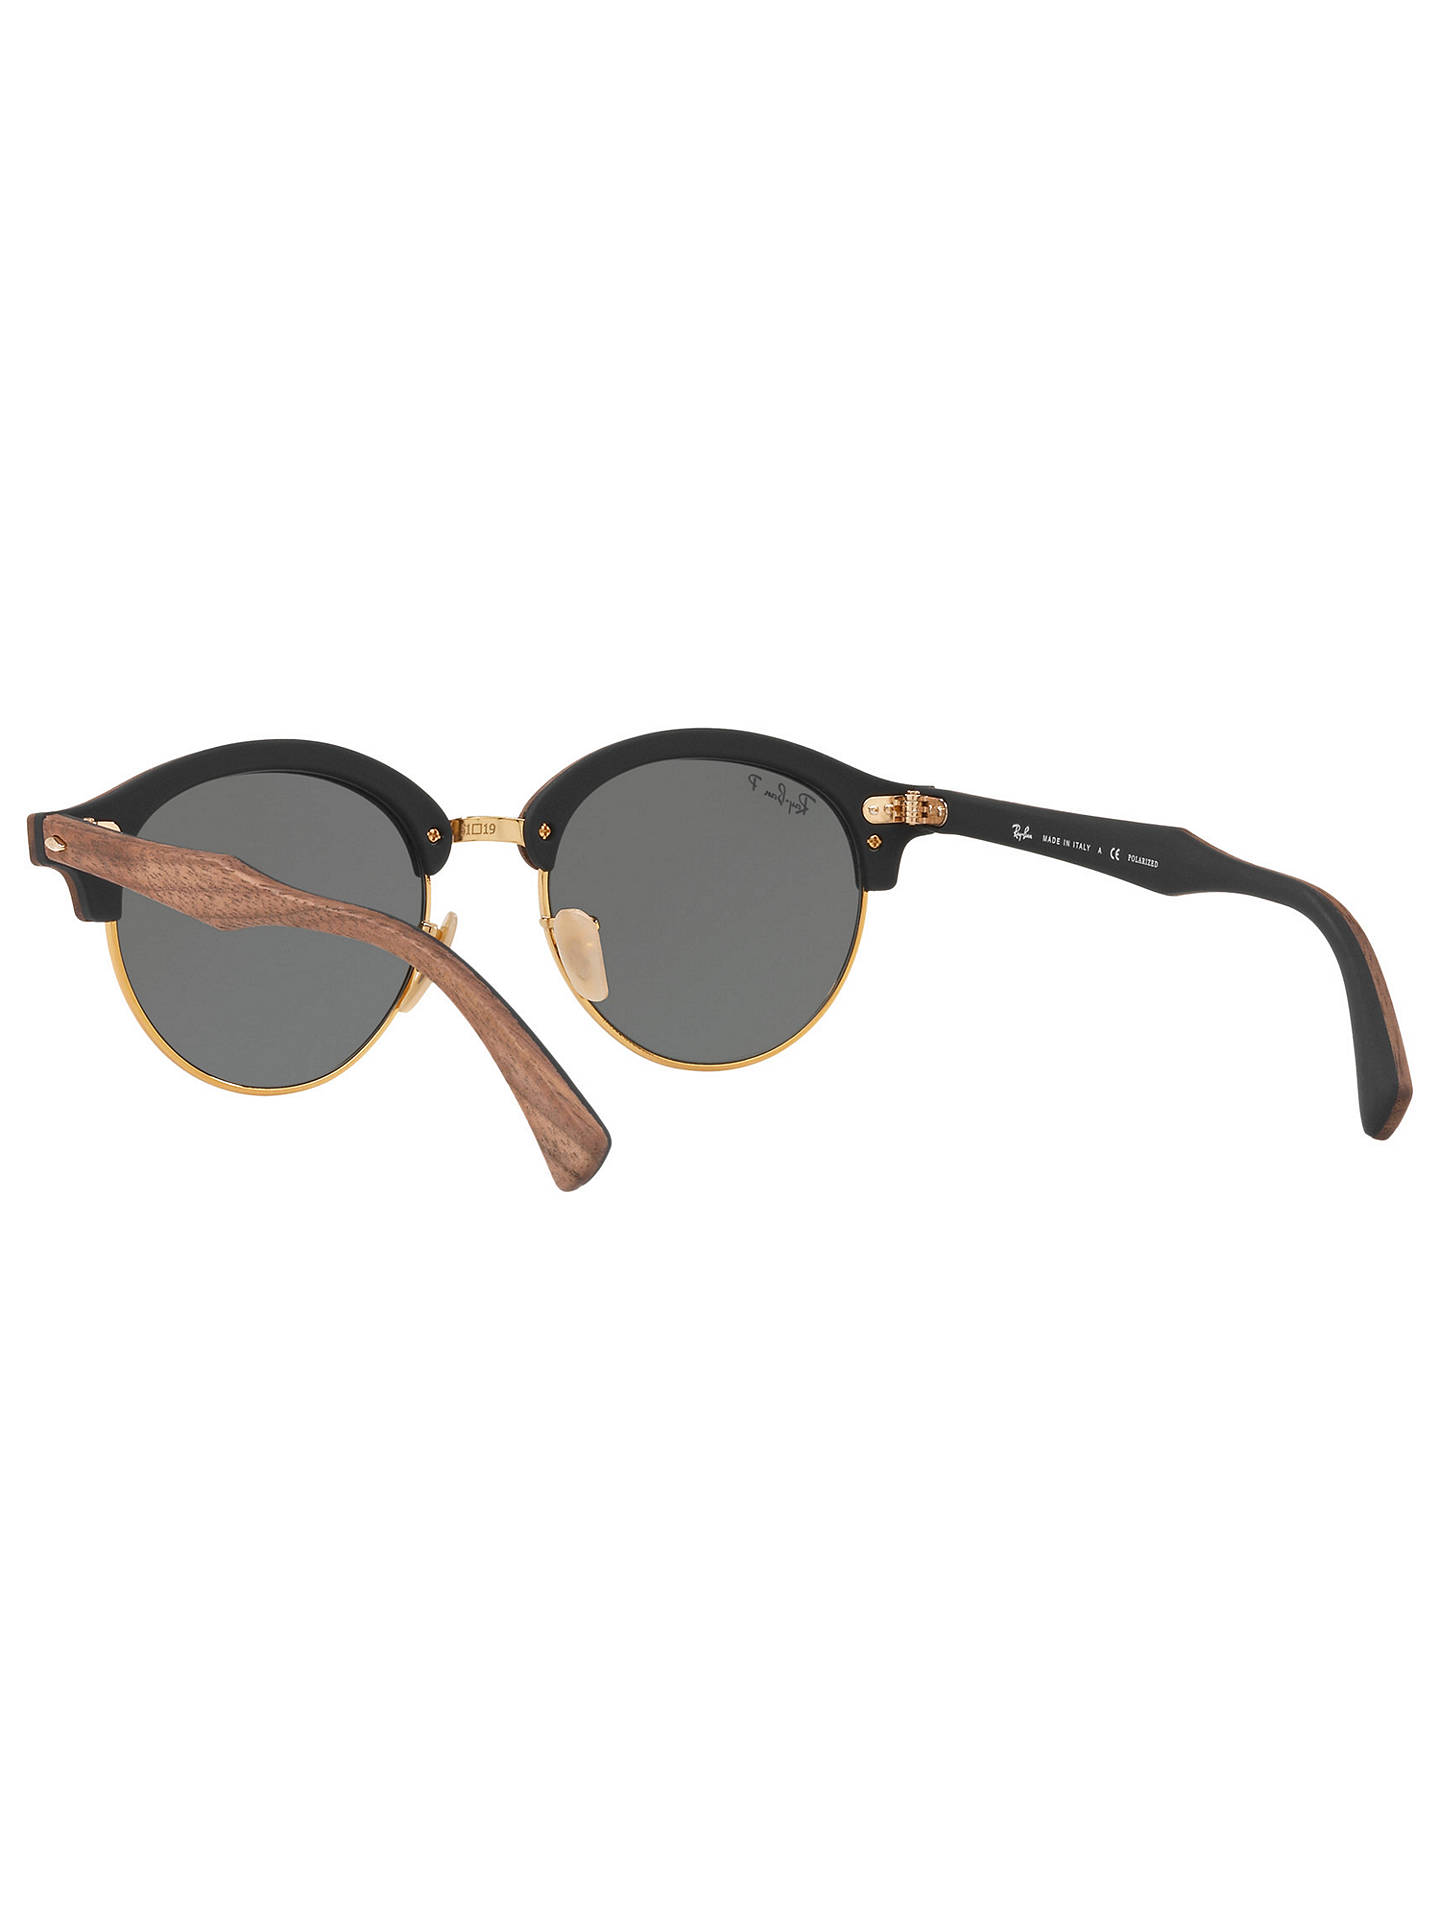 BuyRay-Ban RB4246M Clubround Wood Polarised Round Sunglasses, Brown/Dark Green Online at johnlewis.com